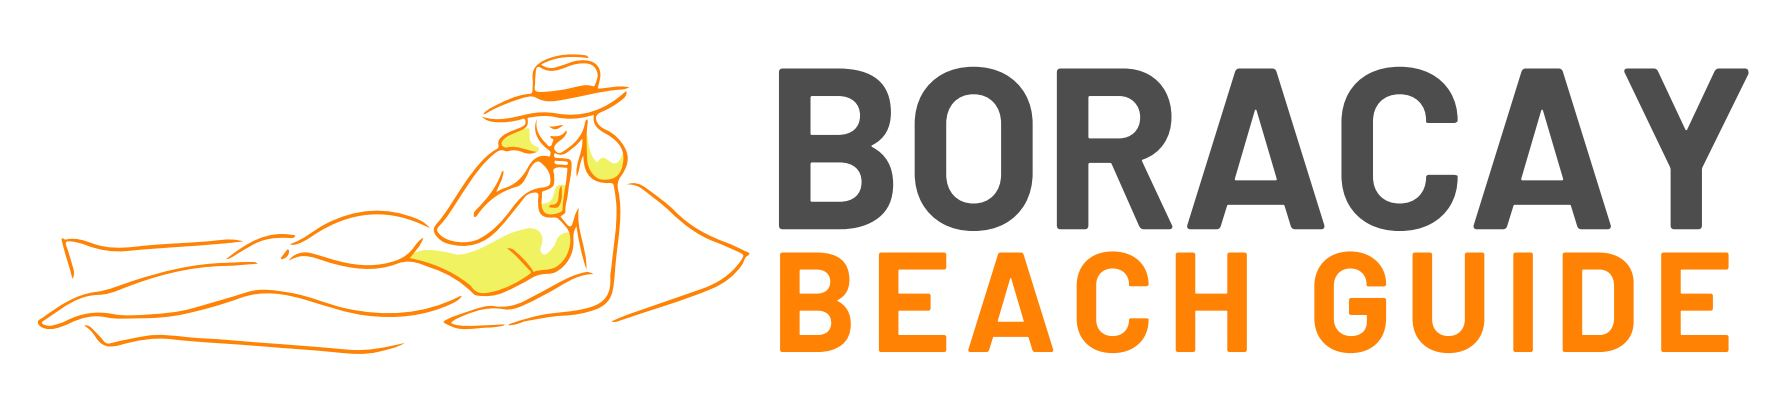 The Boracay Beach Guide | Zone 5 - Other Areas of Boracay - The Boracay Beach Guide